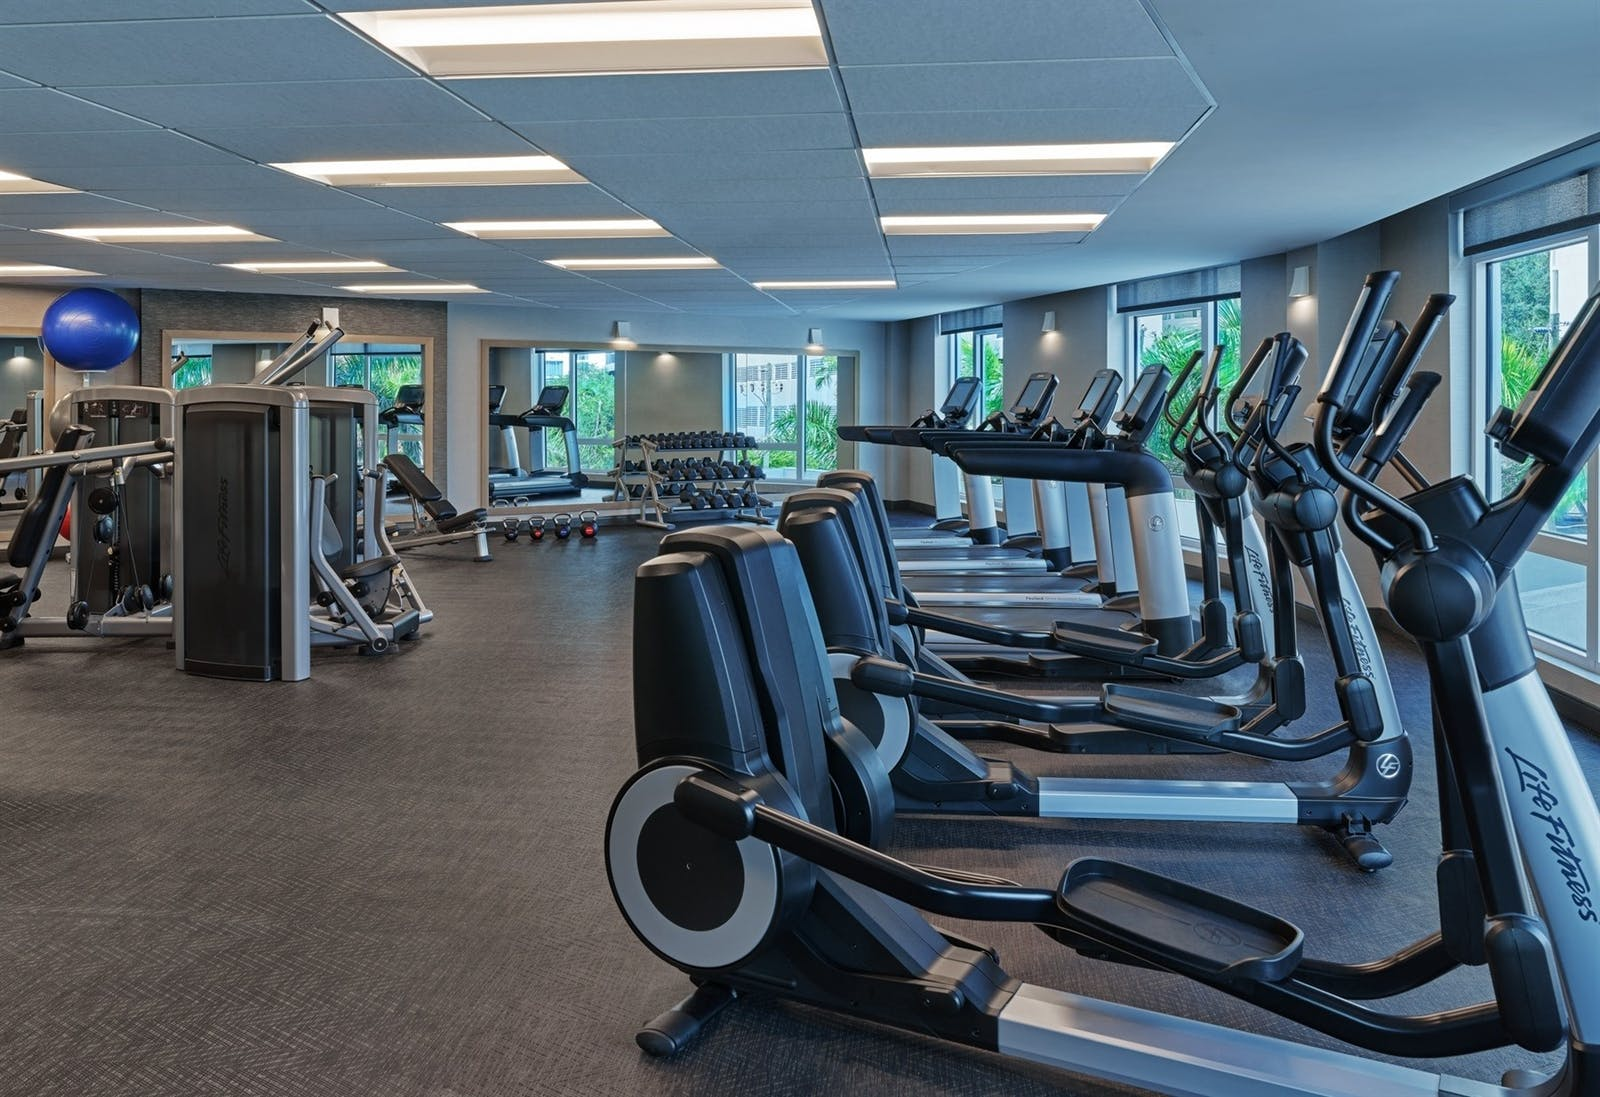 The gym at Art Ovation Hotel